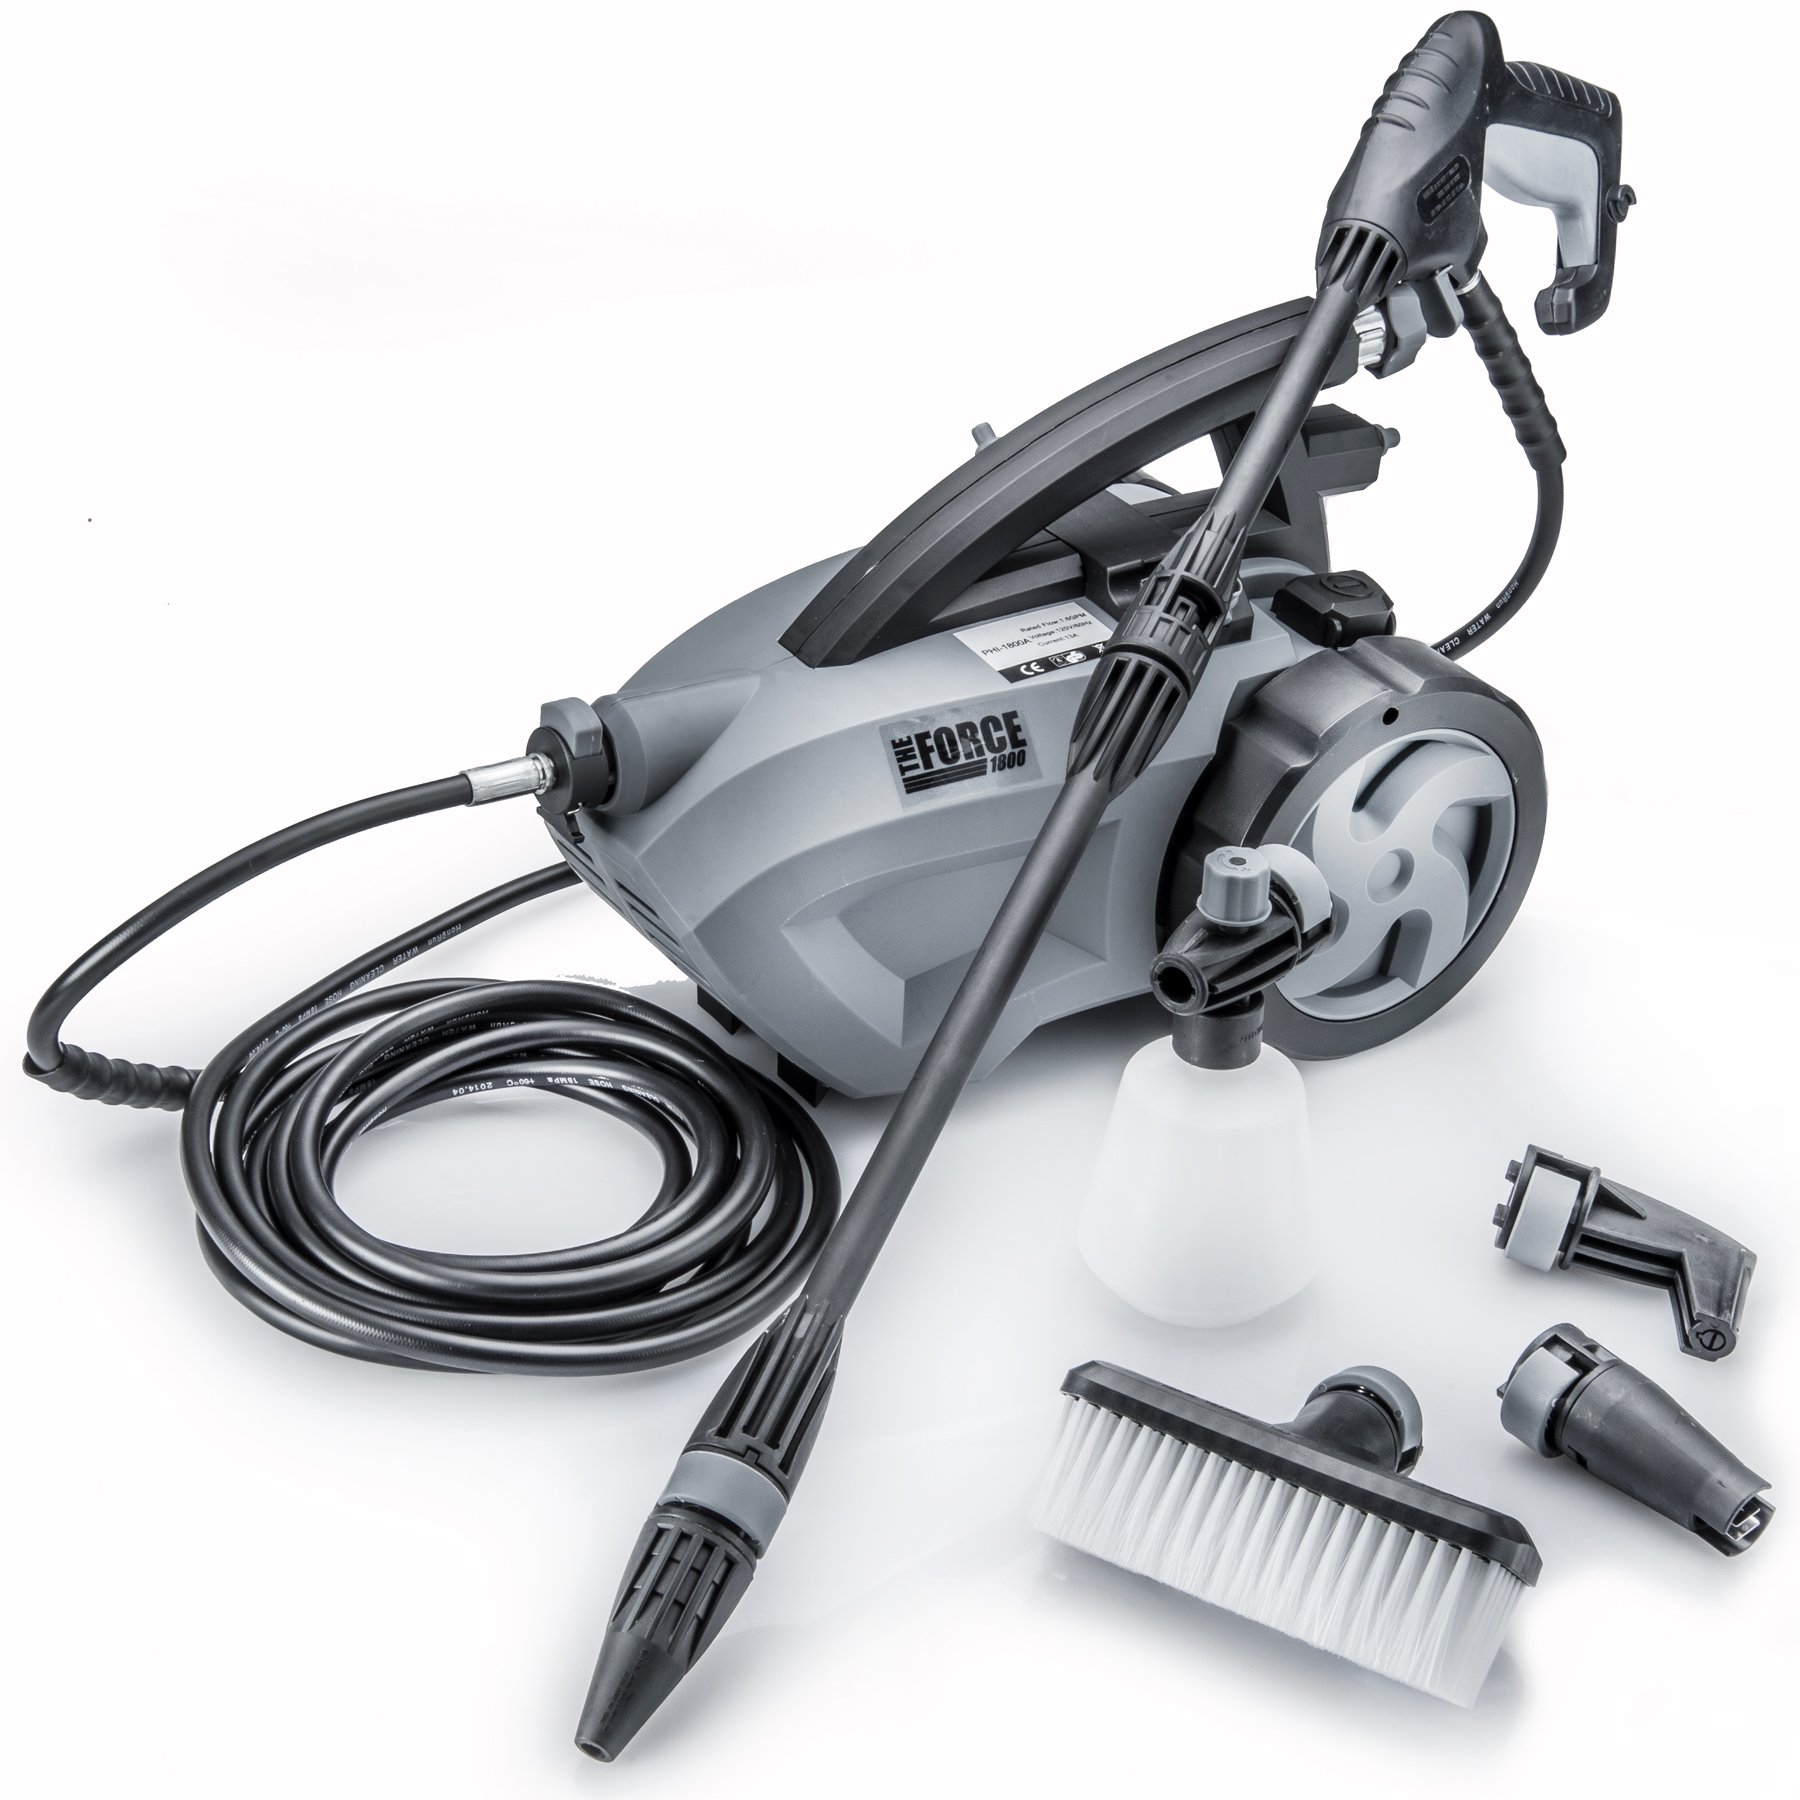 Best Powerhouse International - The Force 1800 - Pulls Behind Electric Pressure Washers Reviews Buying Guide